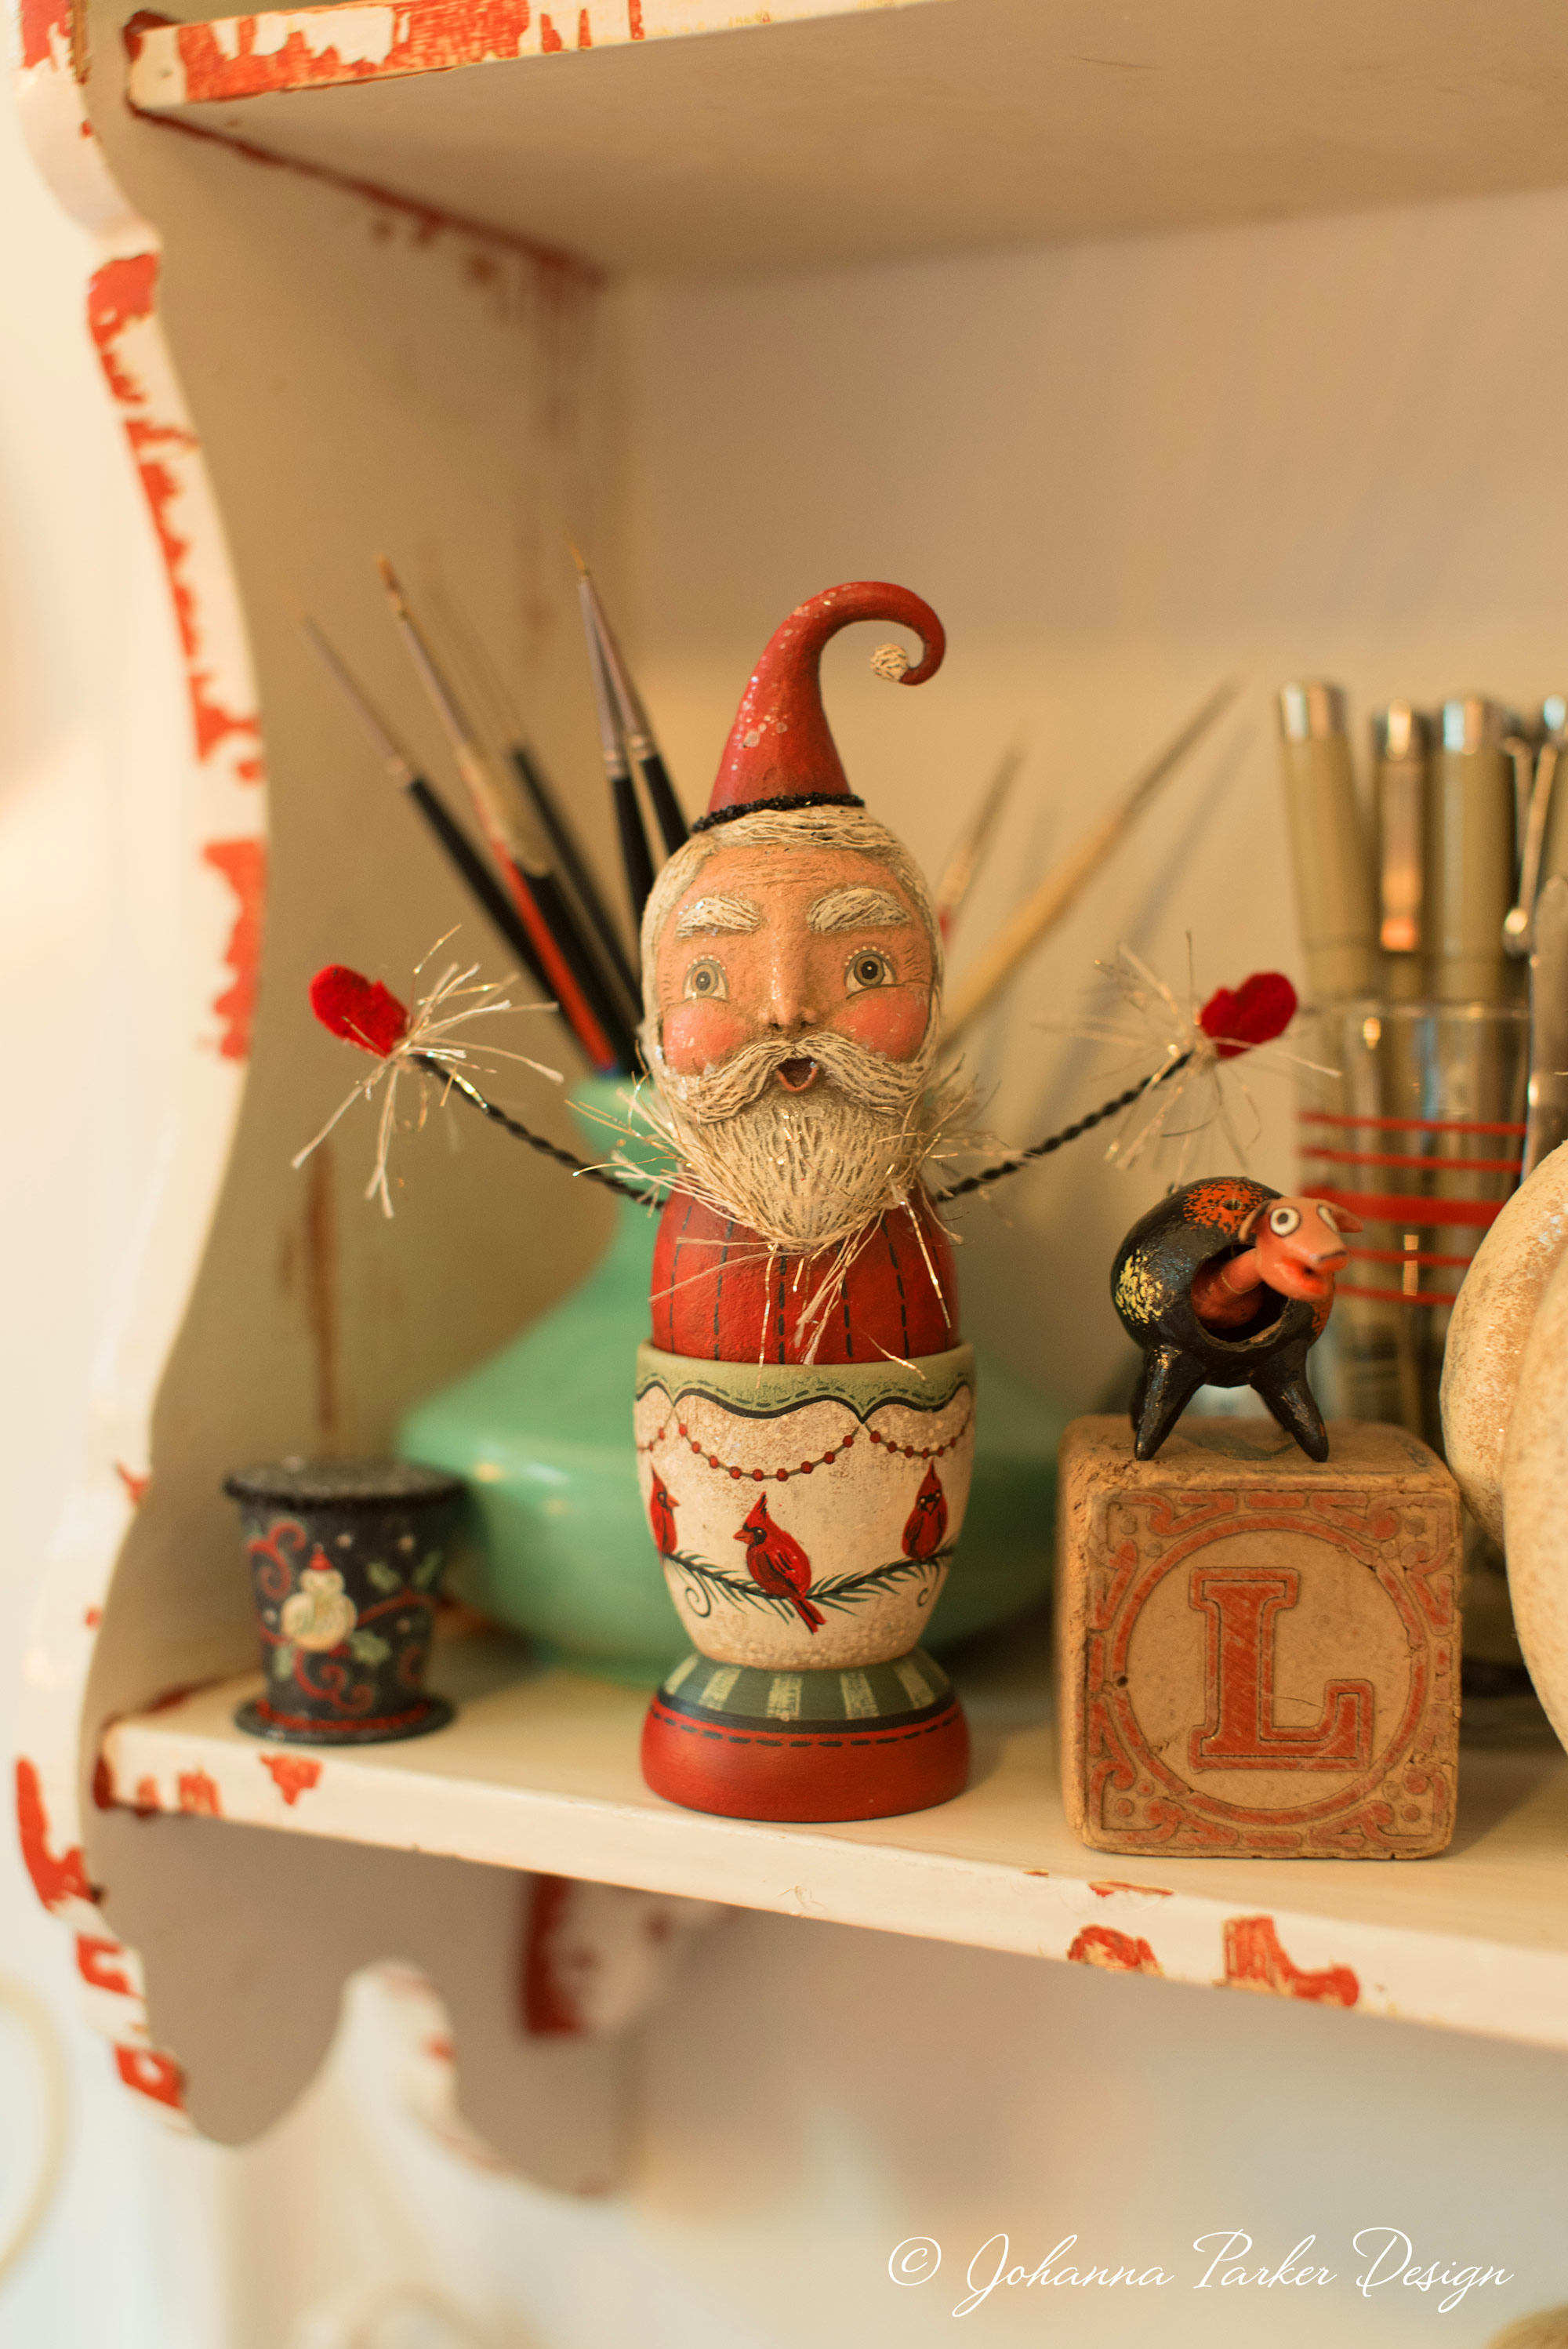 Paintbrushes and pens surround a sweet Santa egg cup character.